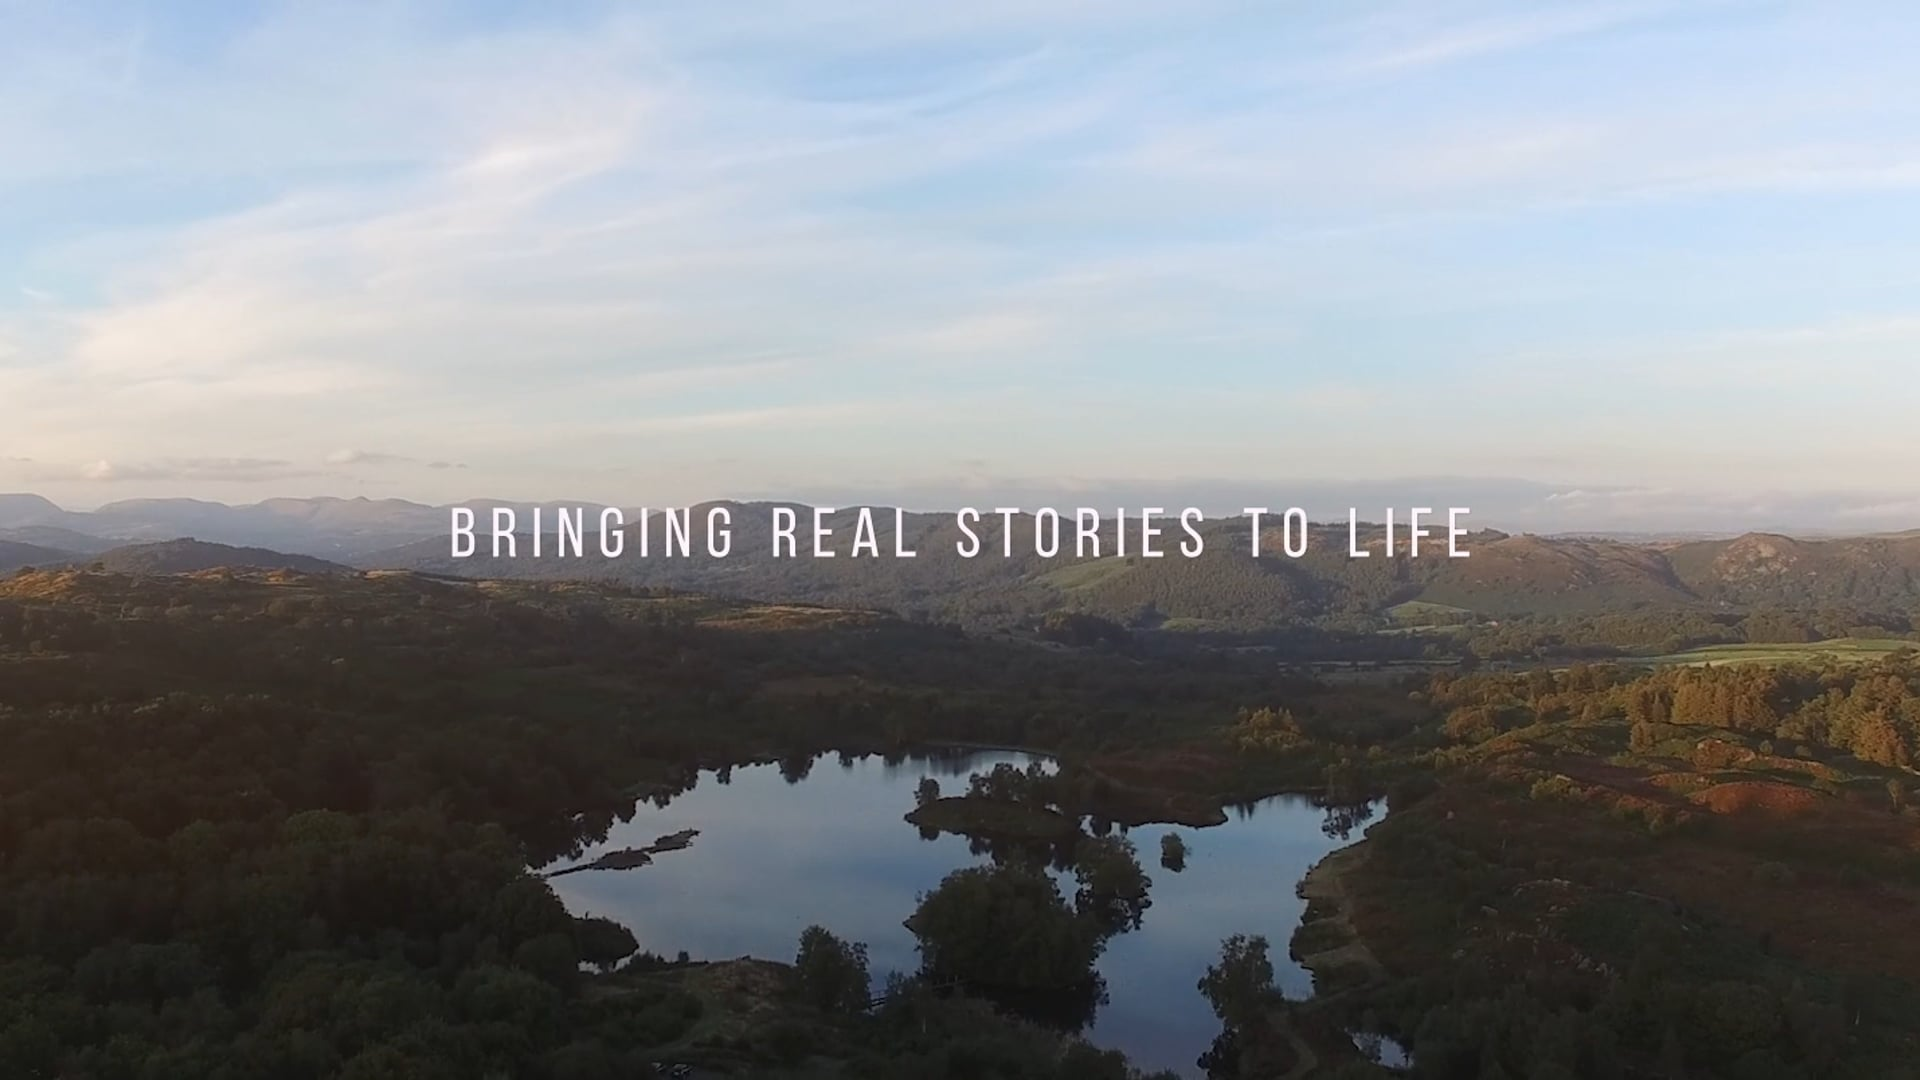 Bringing real stories to life